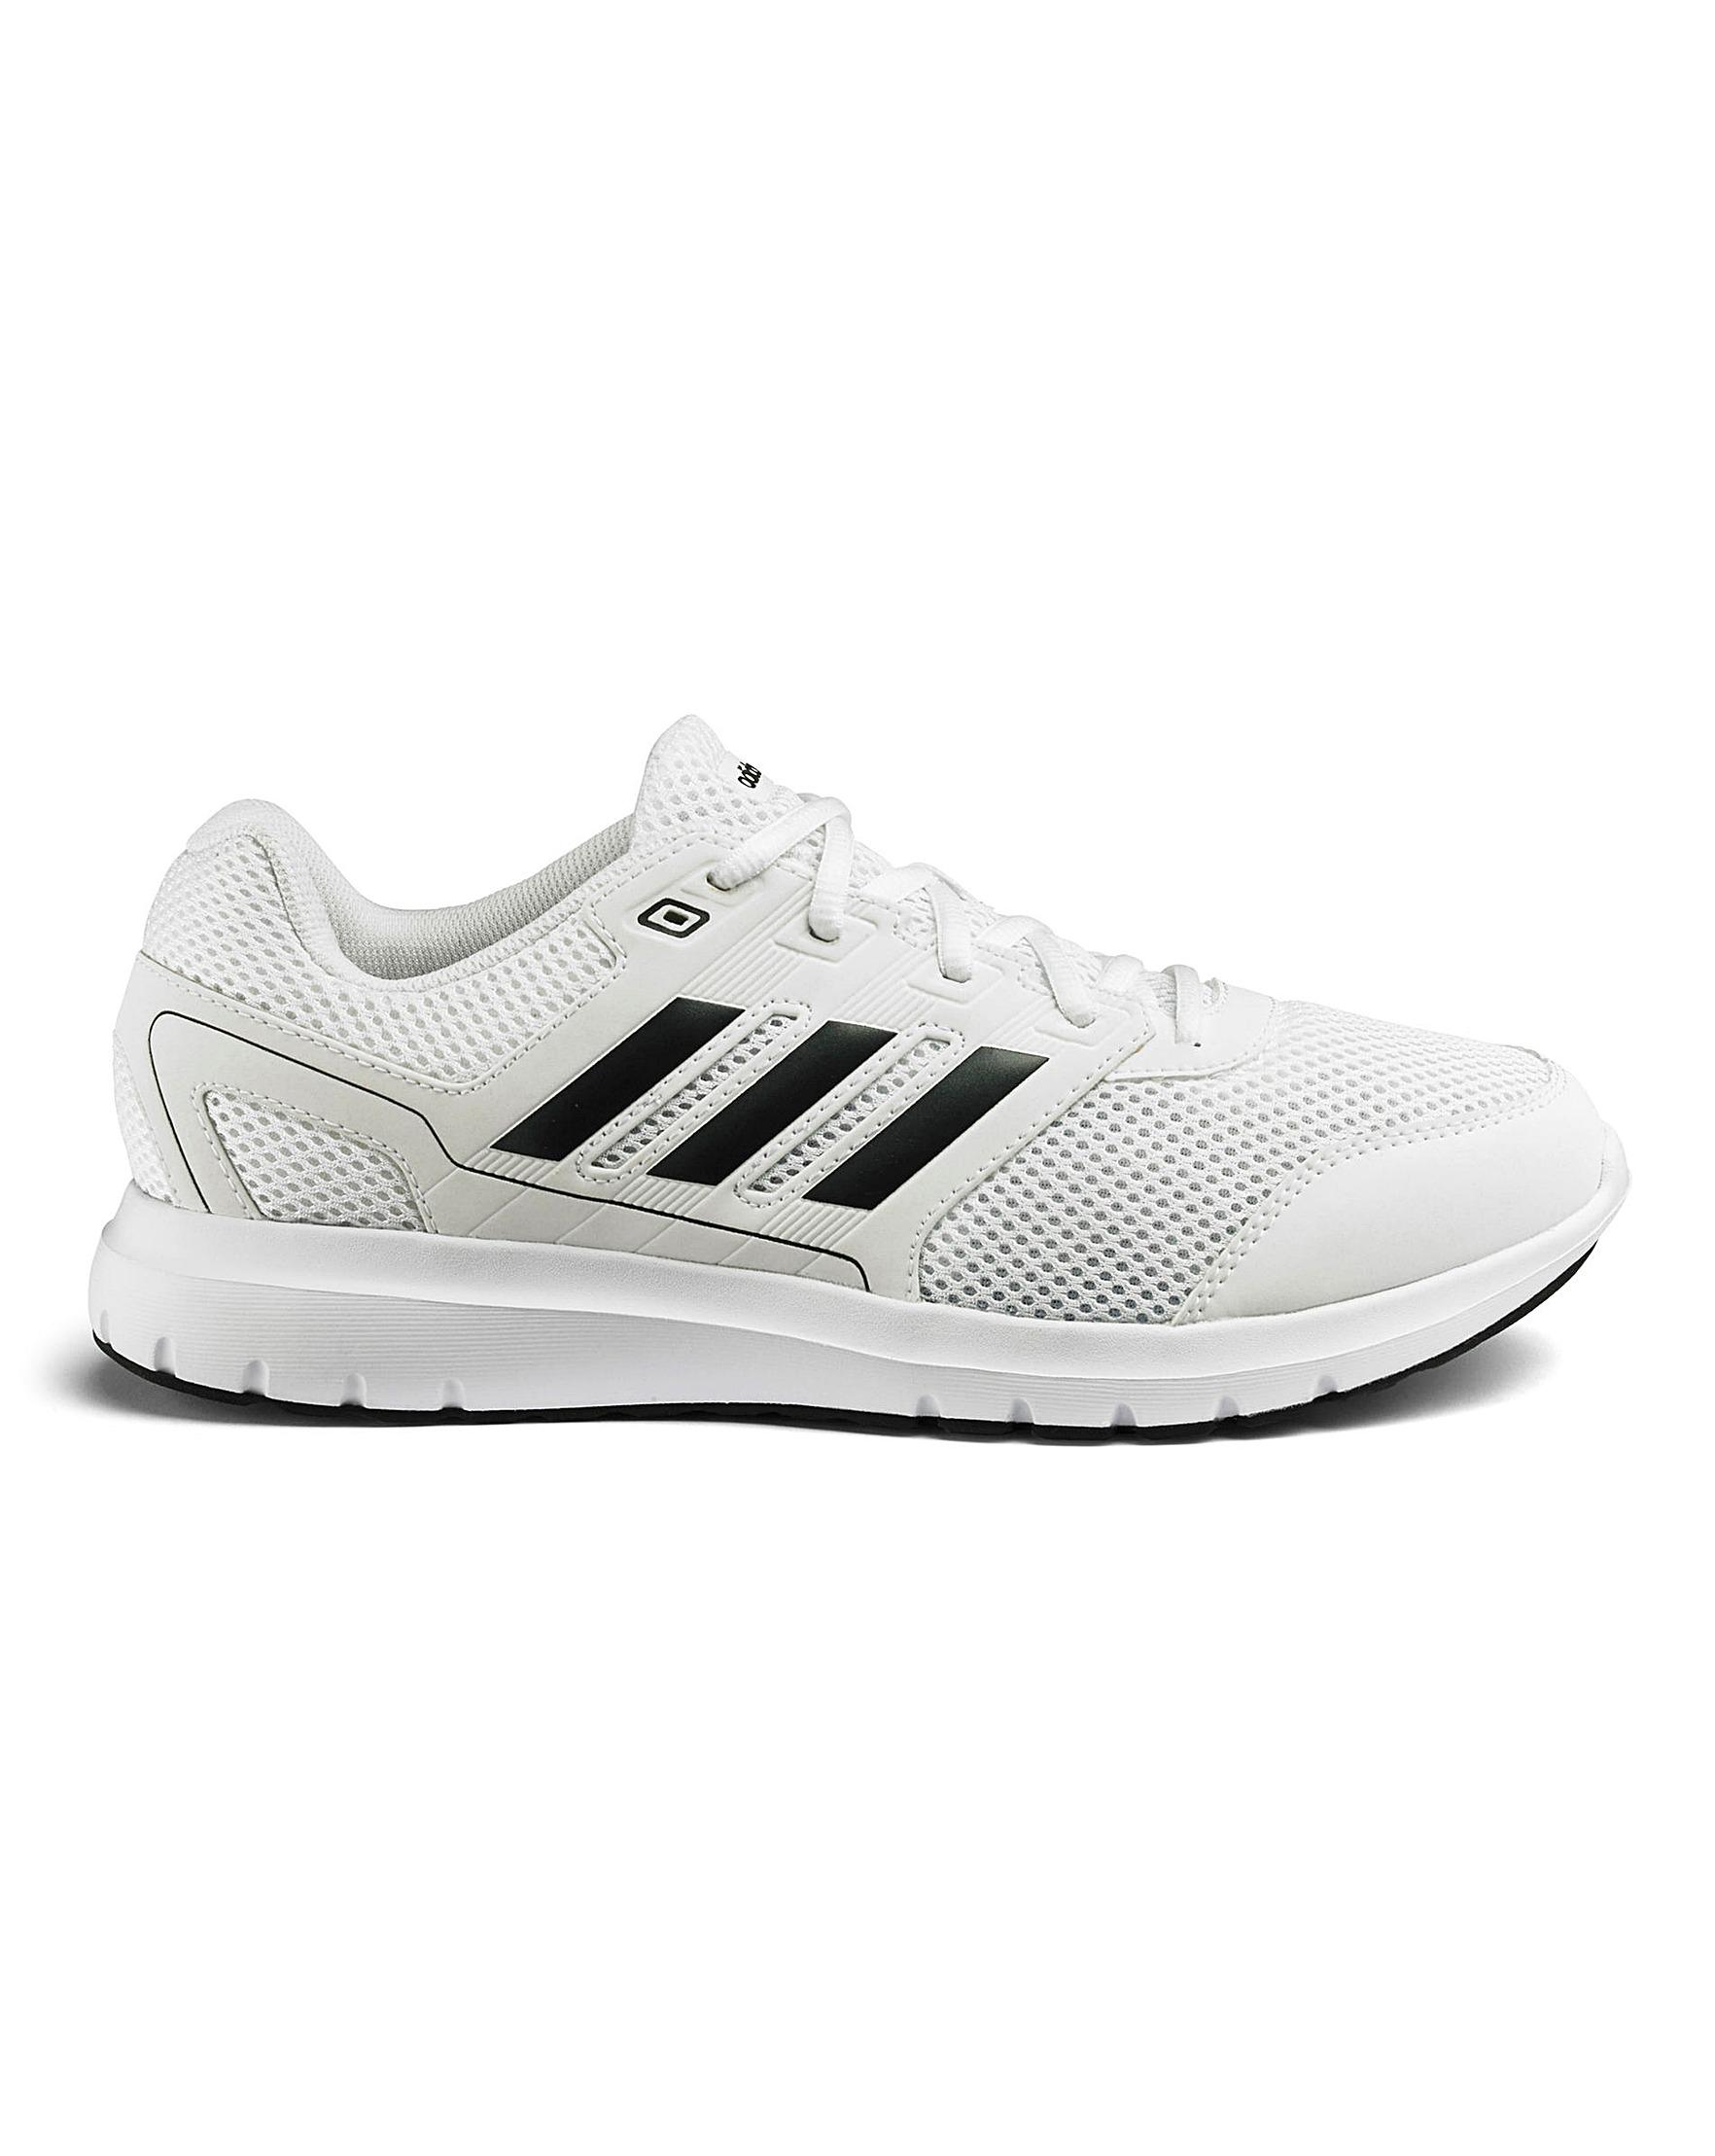 sports shoes daf8d 34fd8 adidas. Mens White Duramo Lite 2.0 Trainers